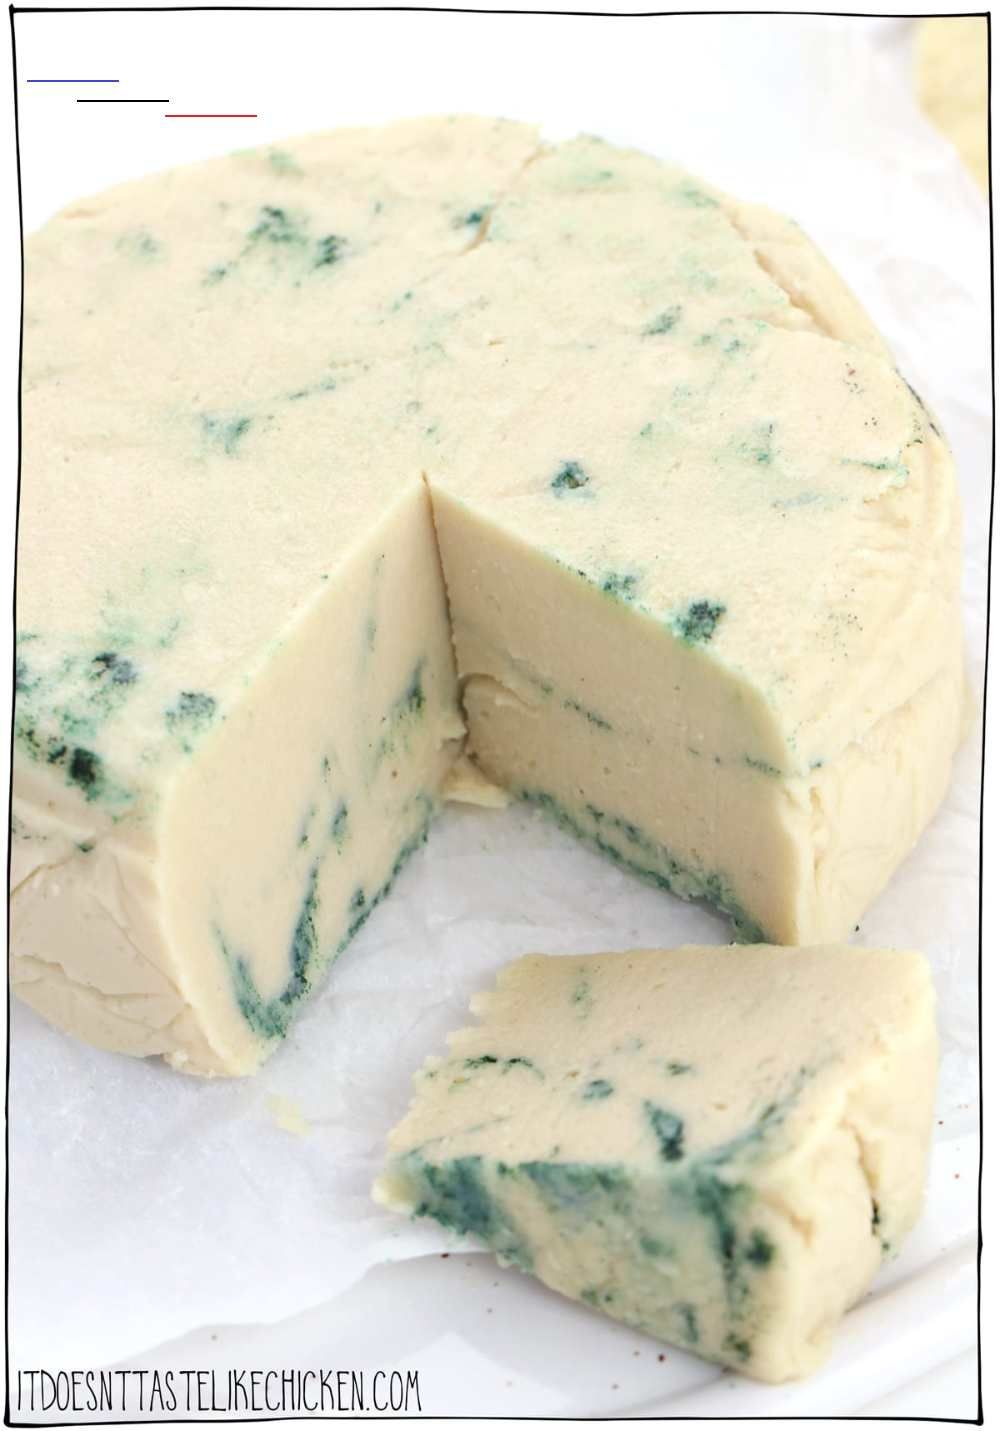 what can i do with blue cheese